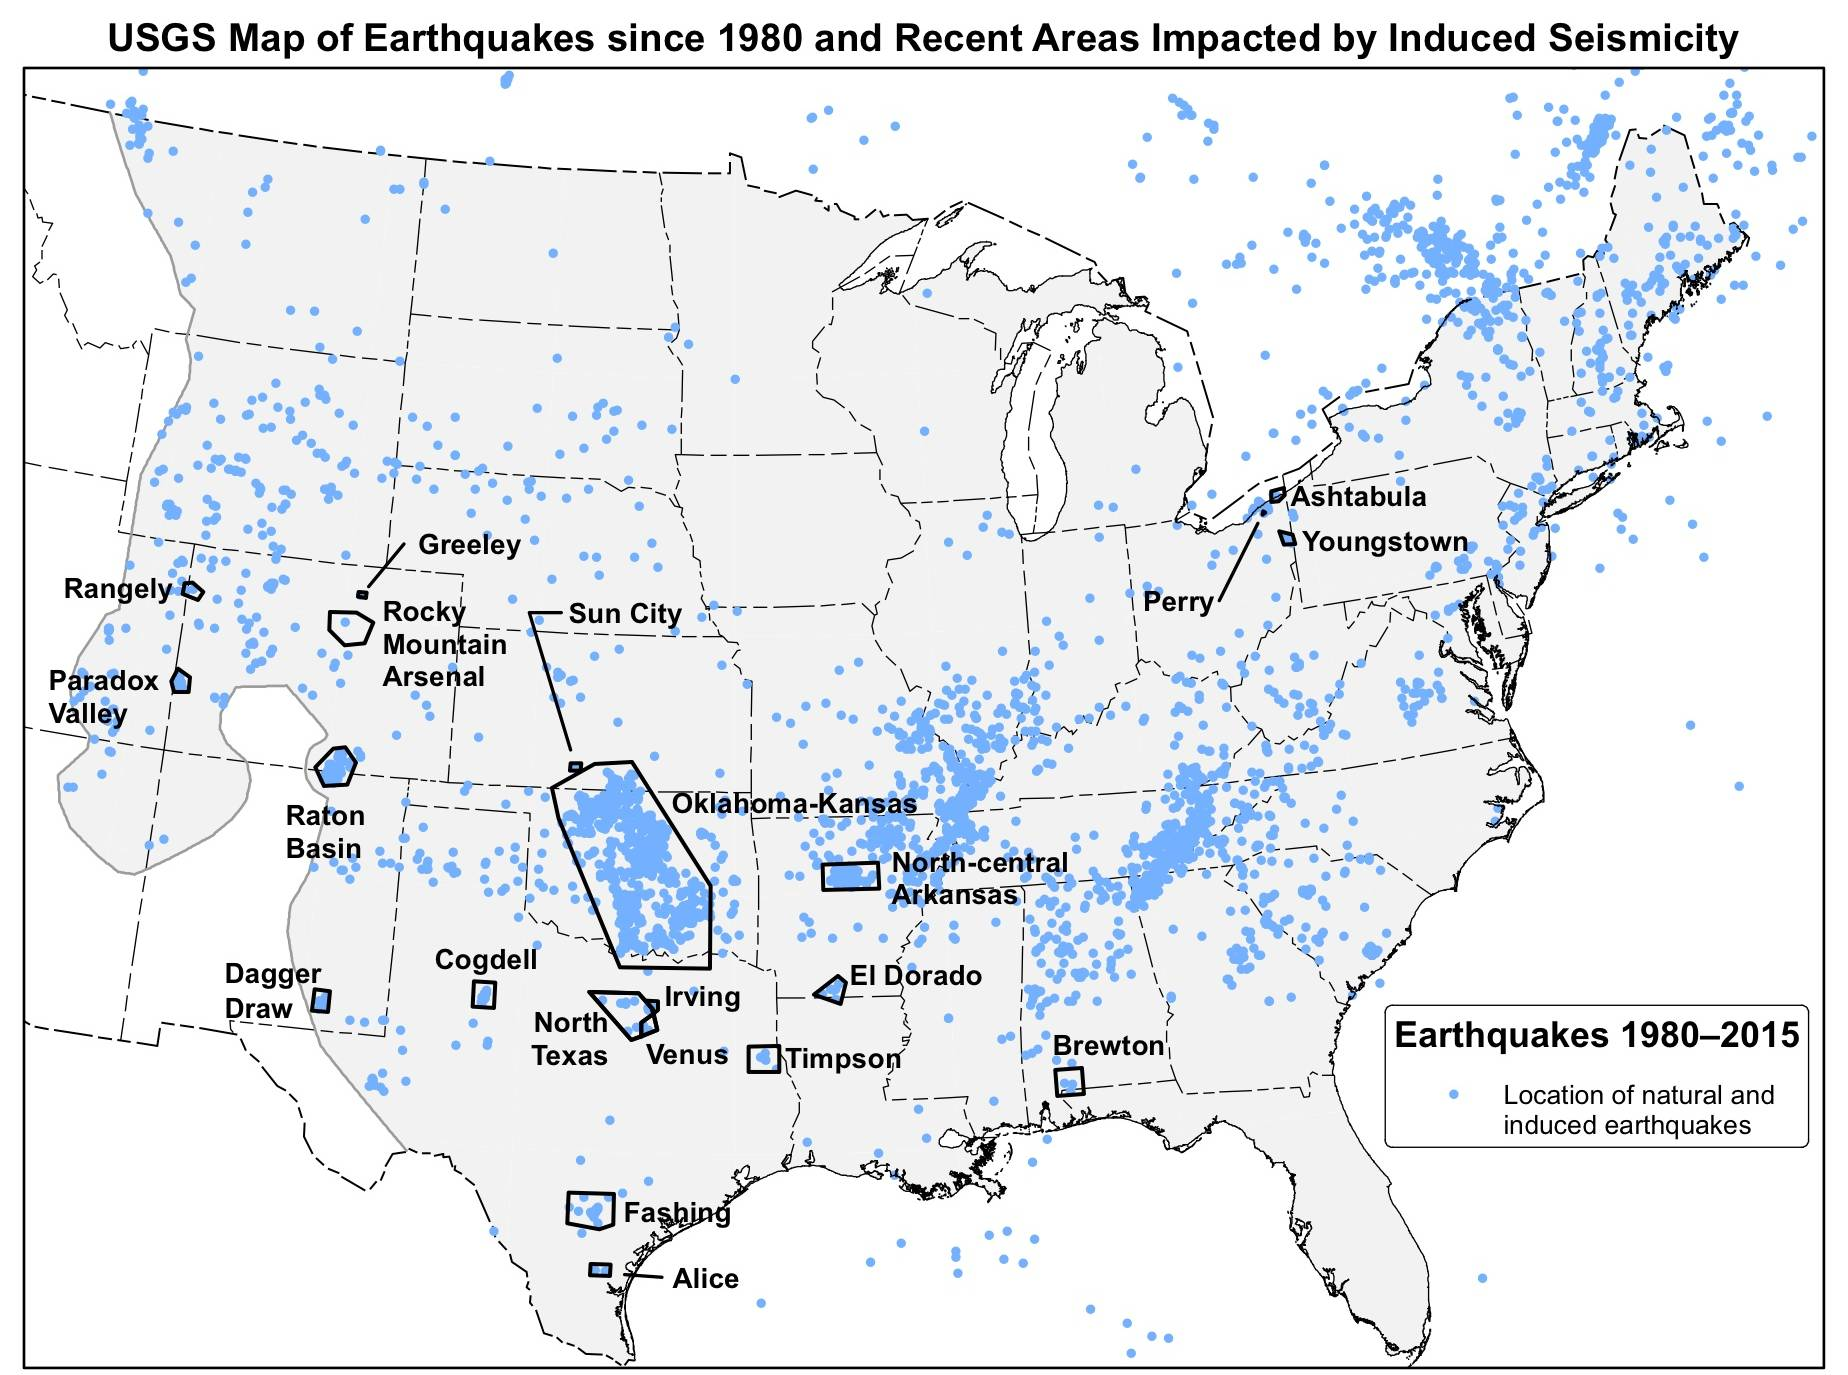 USGS map displaying 21 areas where scientists have observed rapid changes in seismicity that are associated with wastewater injection. The map also shows natural and induced earthquakes with a magnitude greater than or equal to 2.5.